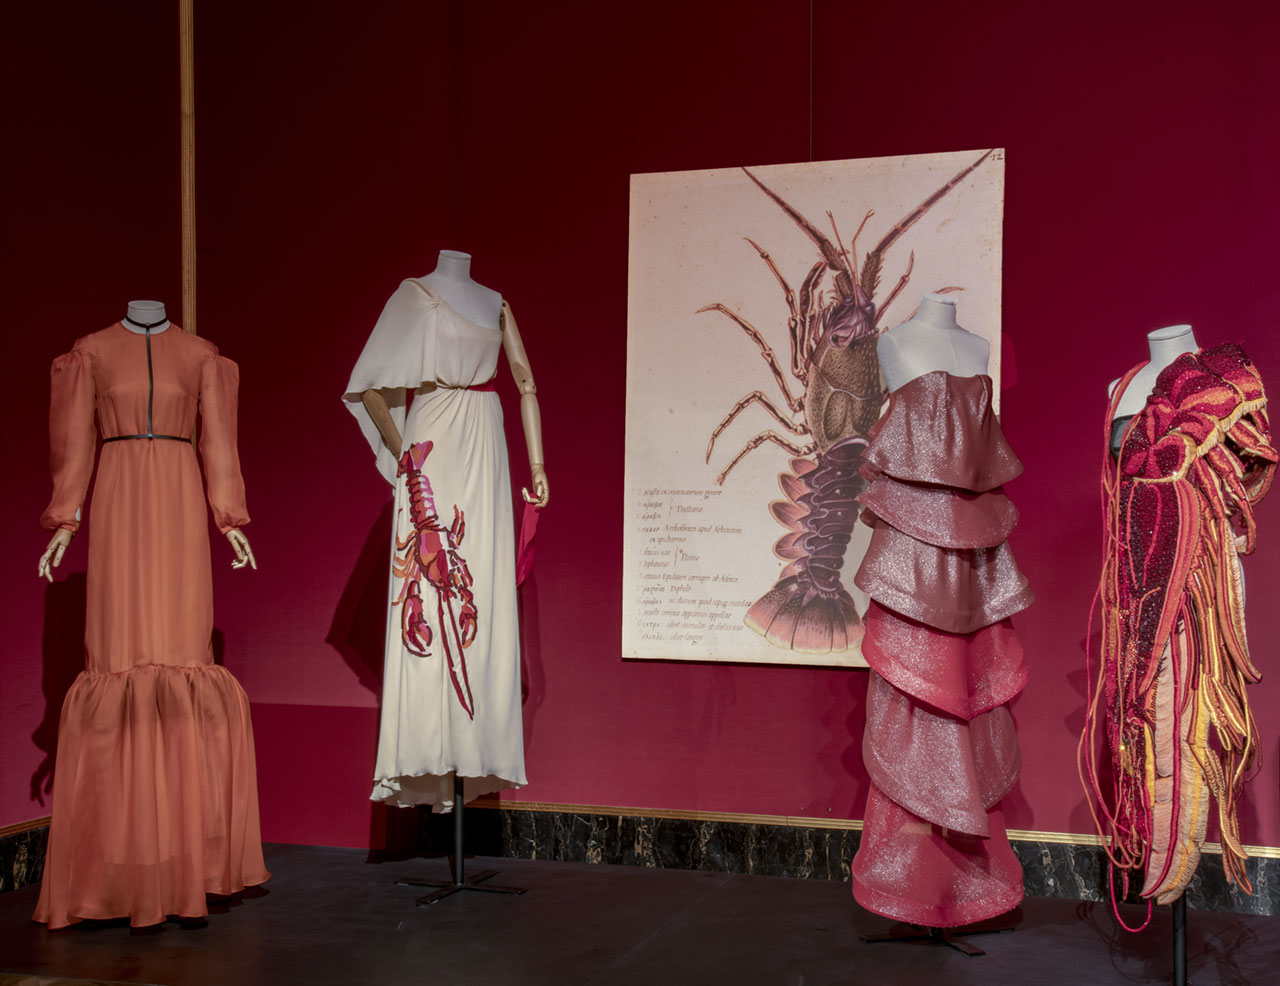 "Exhibition view (from left to right): Marios Schwab, Dress ""Isabel"". Fall/Winter 2015-16. Maison Schiaparelli, Dress ""La rose rouge"", Spring/Summer 2017. Yiqin Yin, Dress ""Voltige"", Moth Collection, Spring/Summer 2014 Haute Couture. Maison Margiela By Matthieu Blazy, Dress, Artisanal Collection, Fall/Winter 2014-15. Photo © Antonio Quattrone."